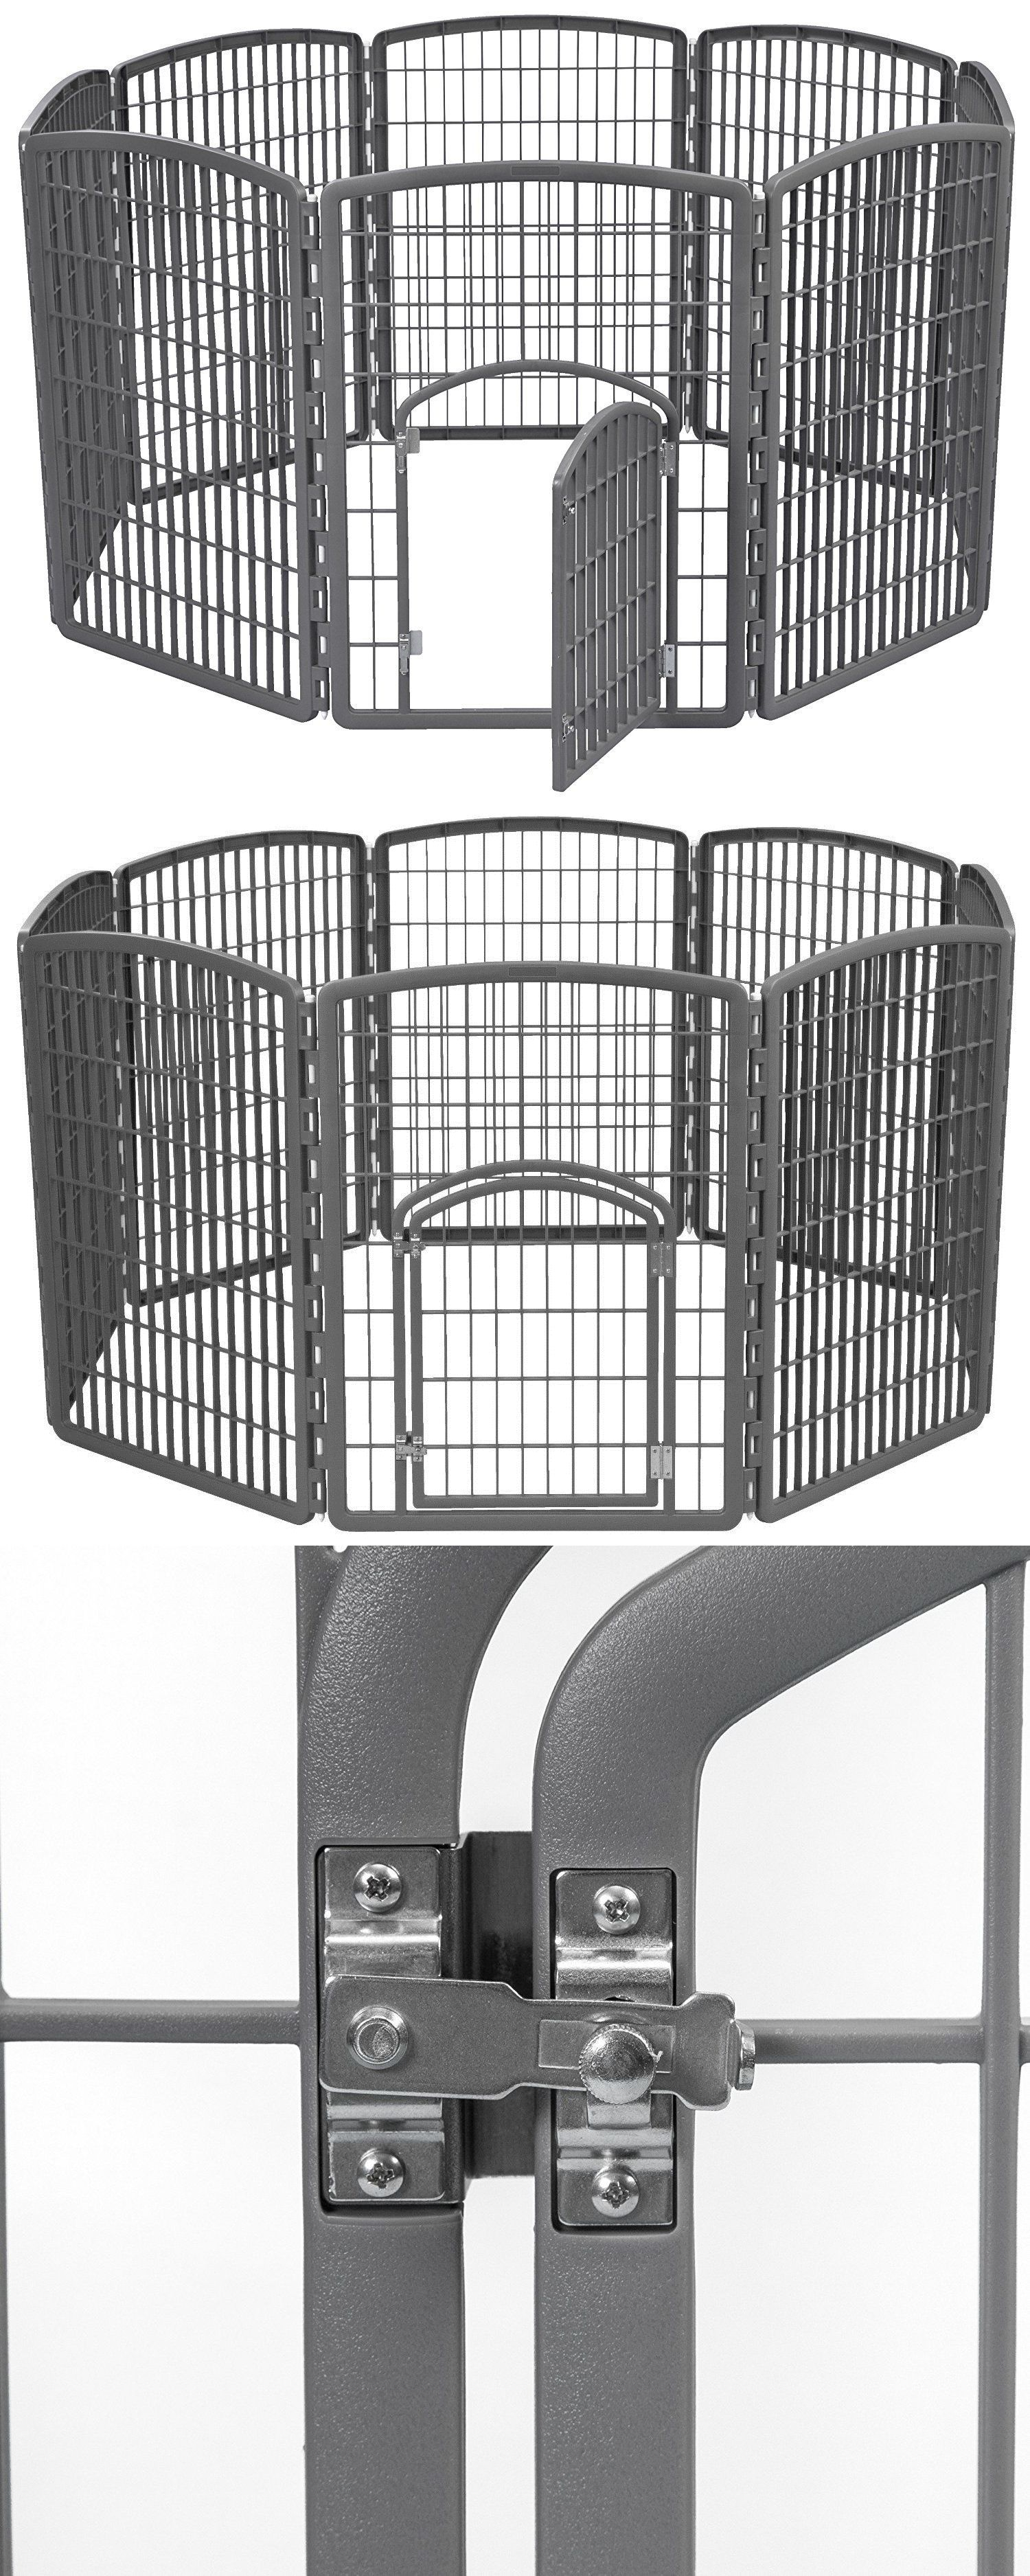 Fences And Exercise Pens 20748: Dog Fence Indoor Outdoor Portable Pet Pen  Gate With Door